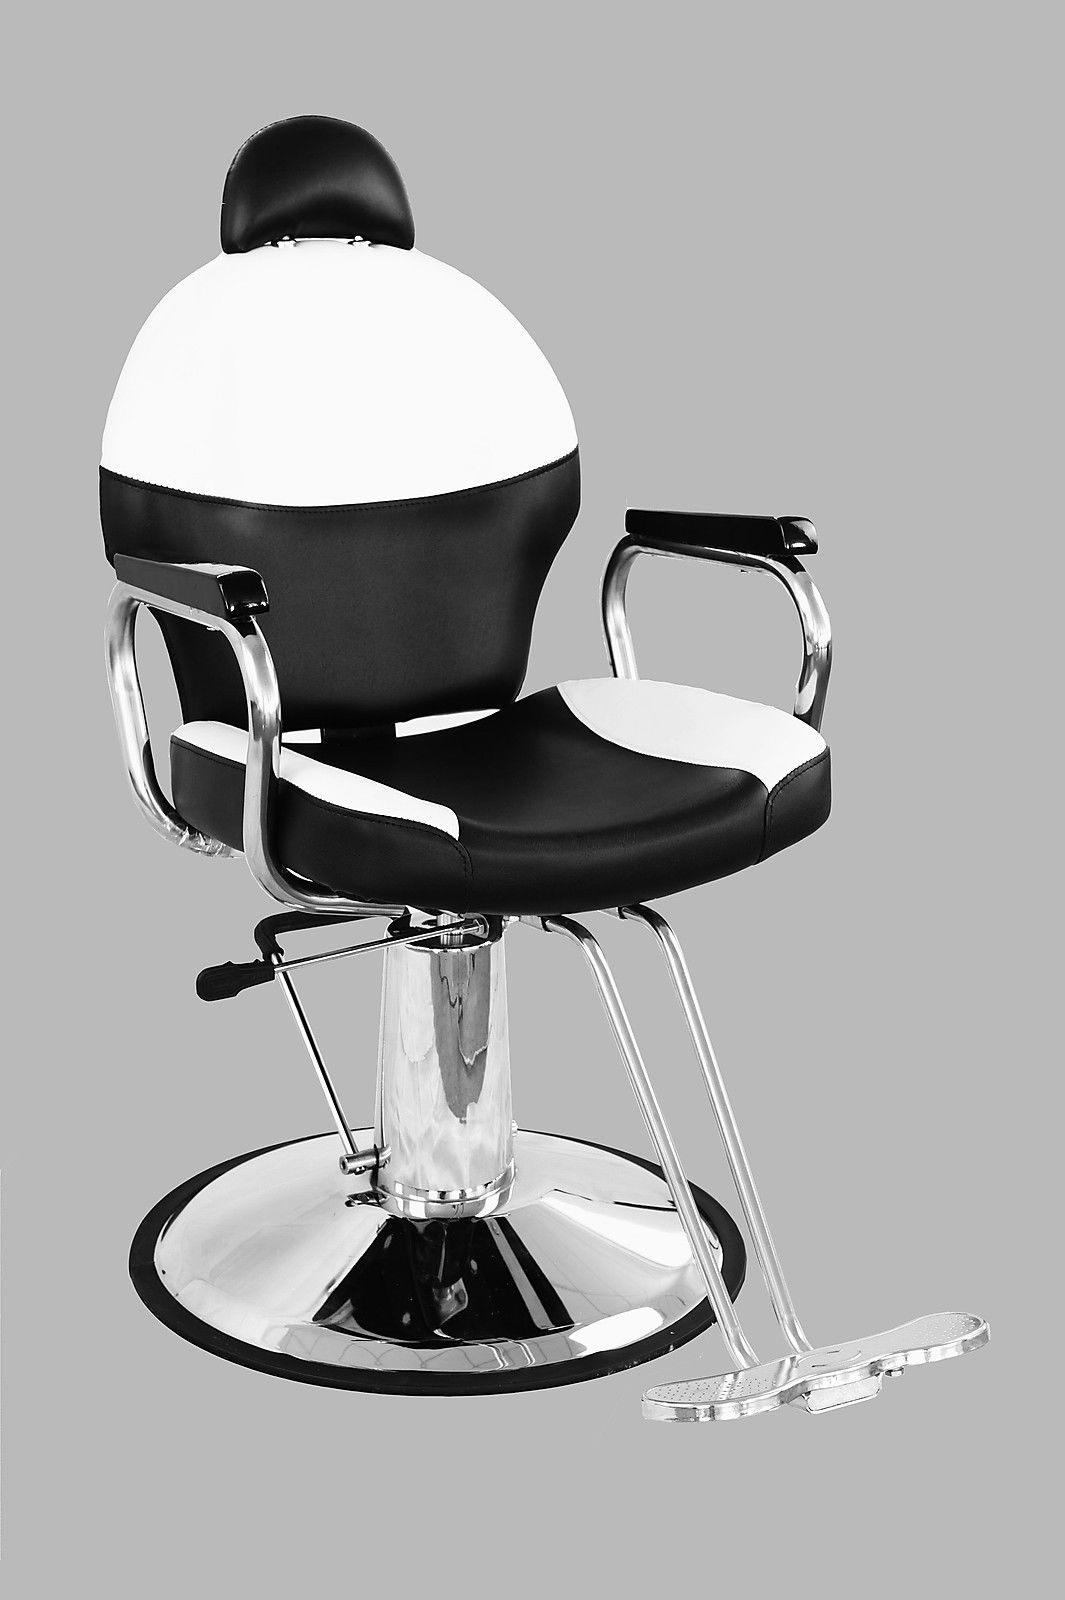 headrest for barber chair black and white reclining hydraulic salon styling beauty spa